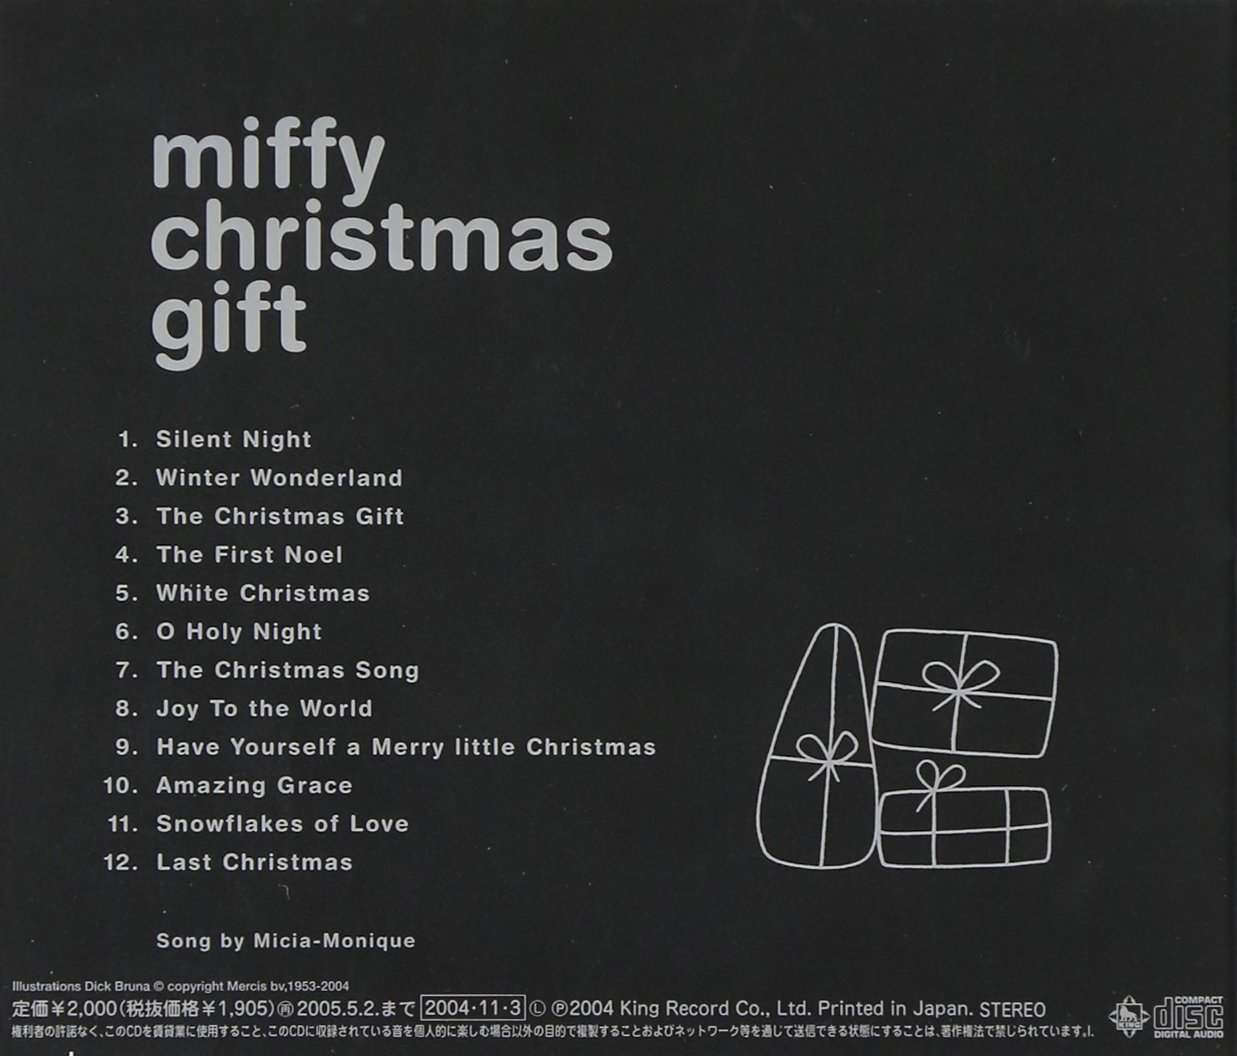 V.A. - MIFFY: CHRISTMAS GIFT - Amazon.com Music